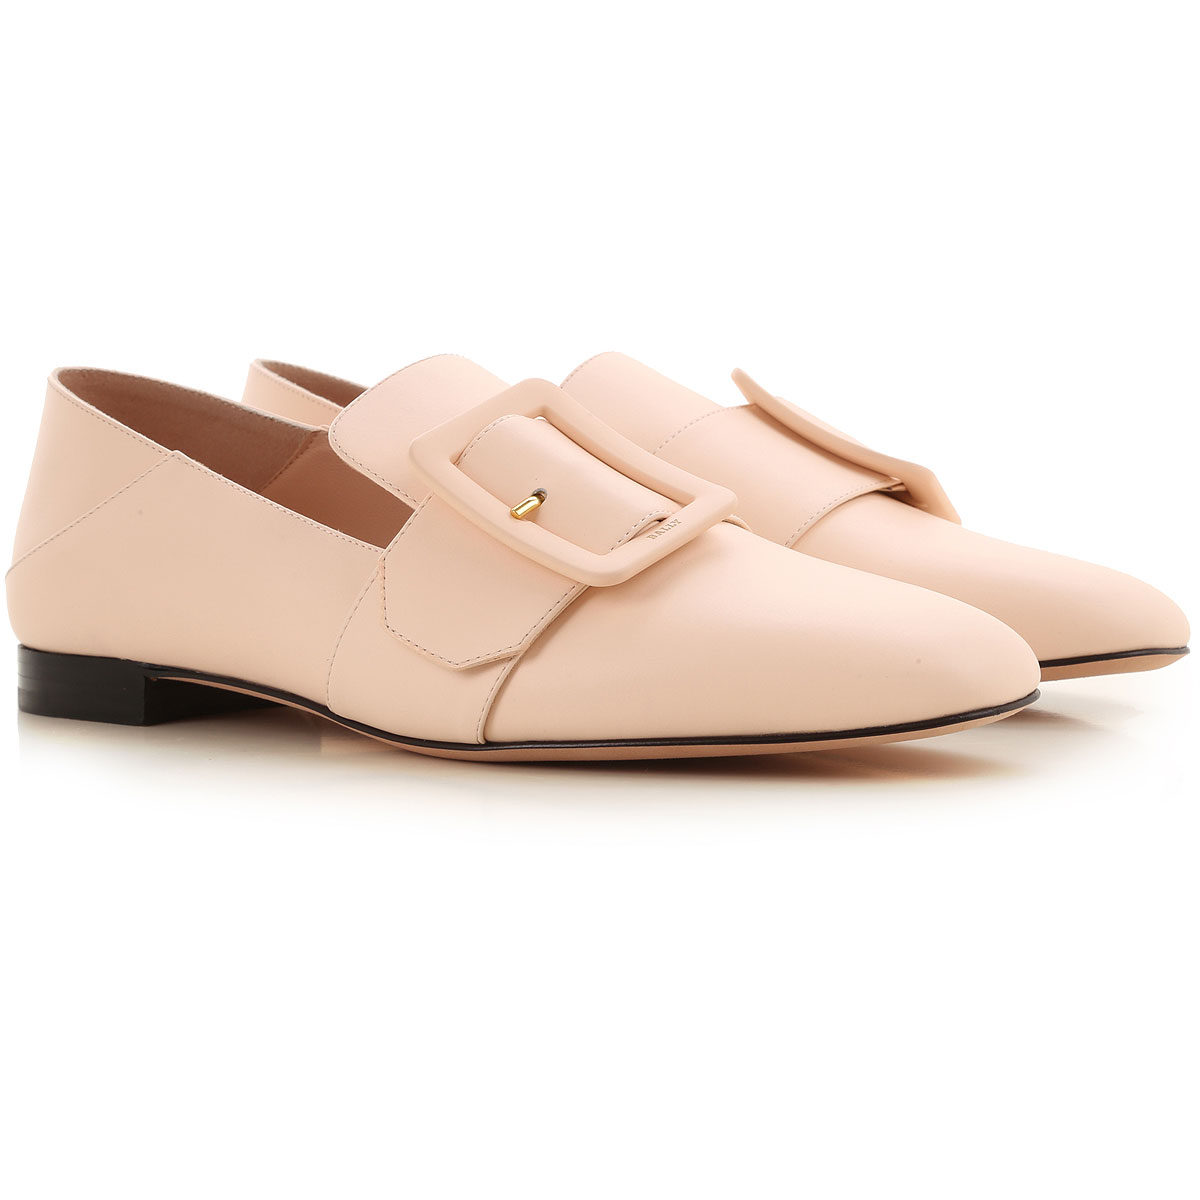 Bally Pumps & High Heels for Women On Sale, Light Pink, Leather, 2019, 9